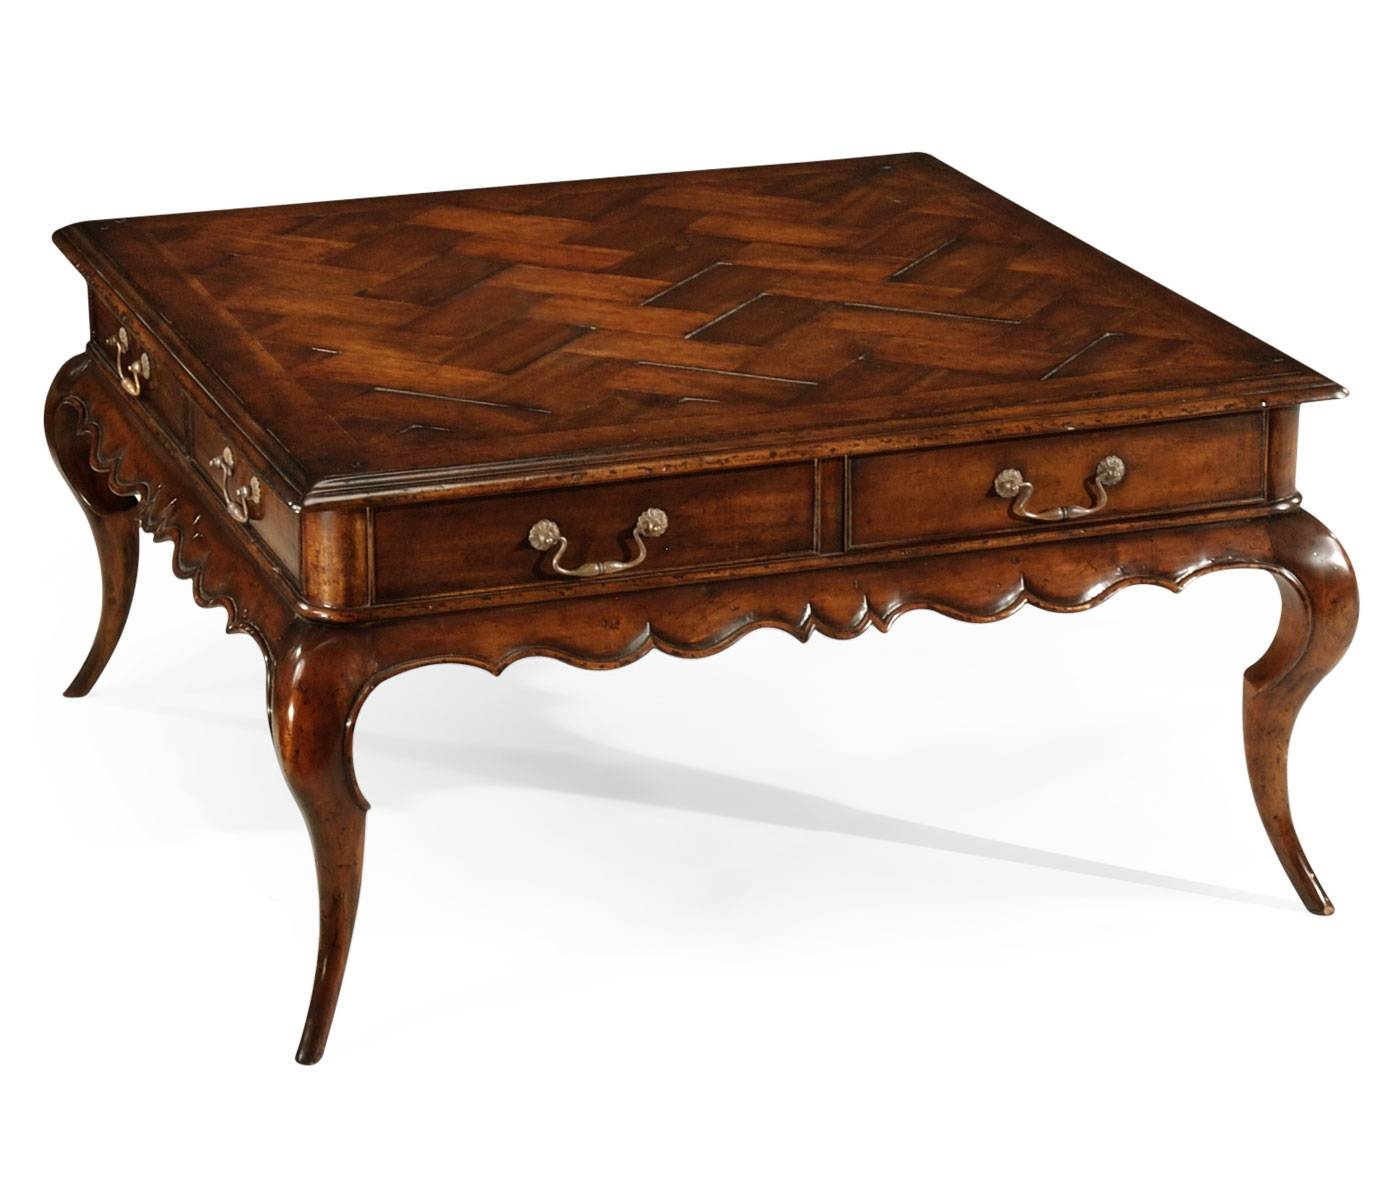 French Coffee Table Ivory Gold Style throughout Country French Coffee Tables (Image 16 of 30)